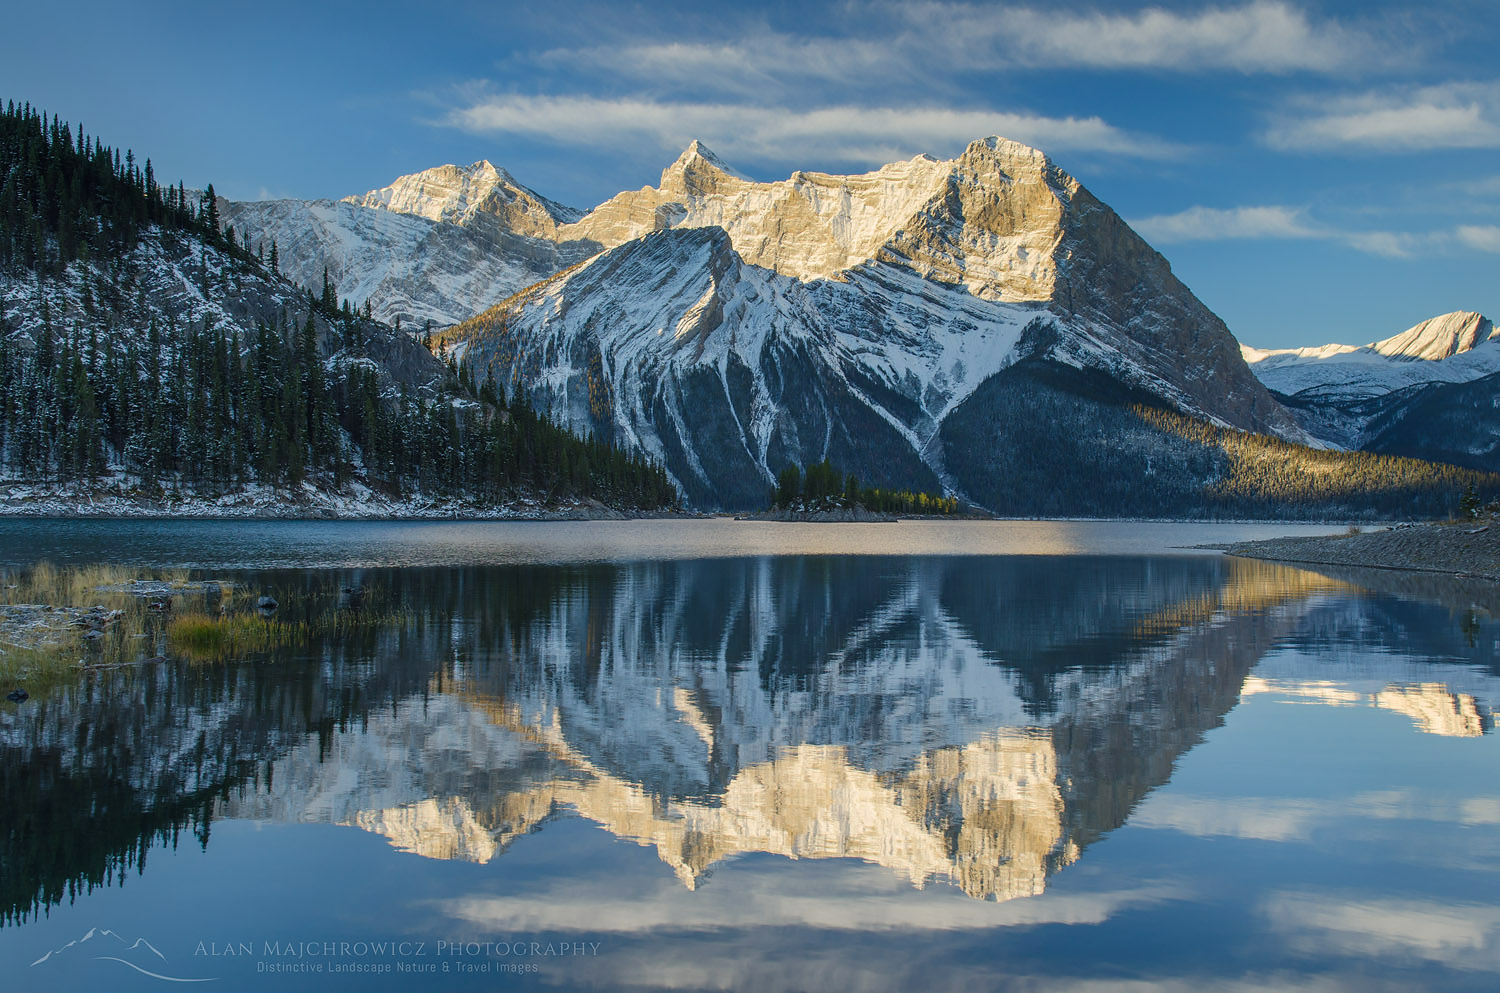 Kananaskis Lake, Peter Lougheed Provincial Park